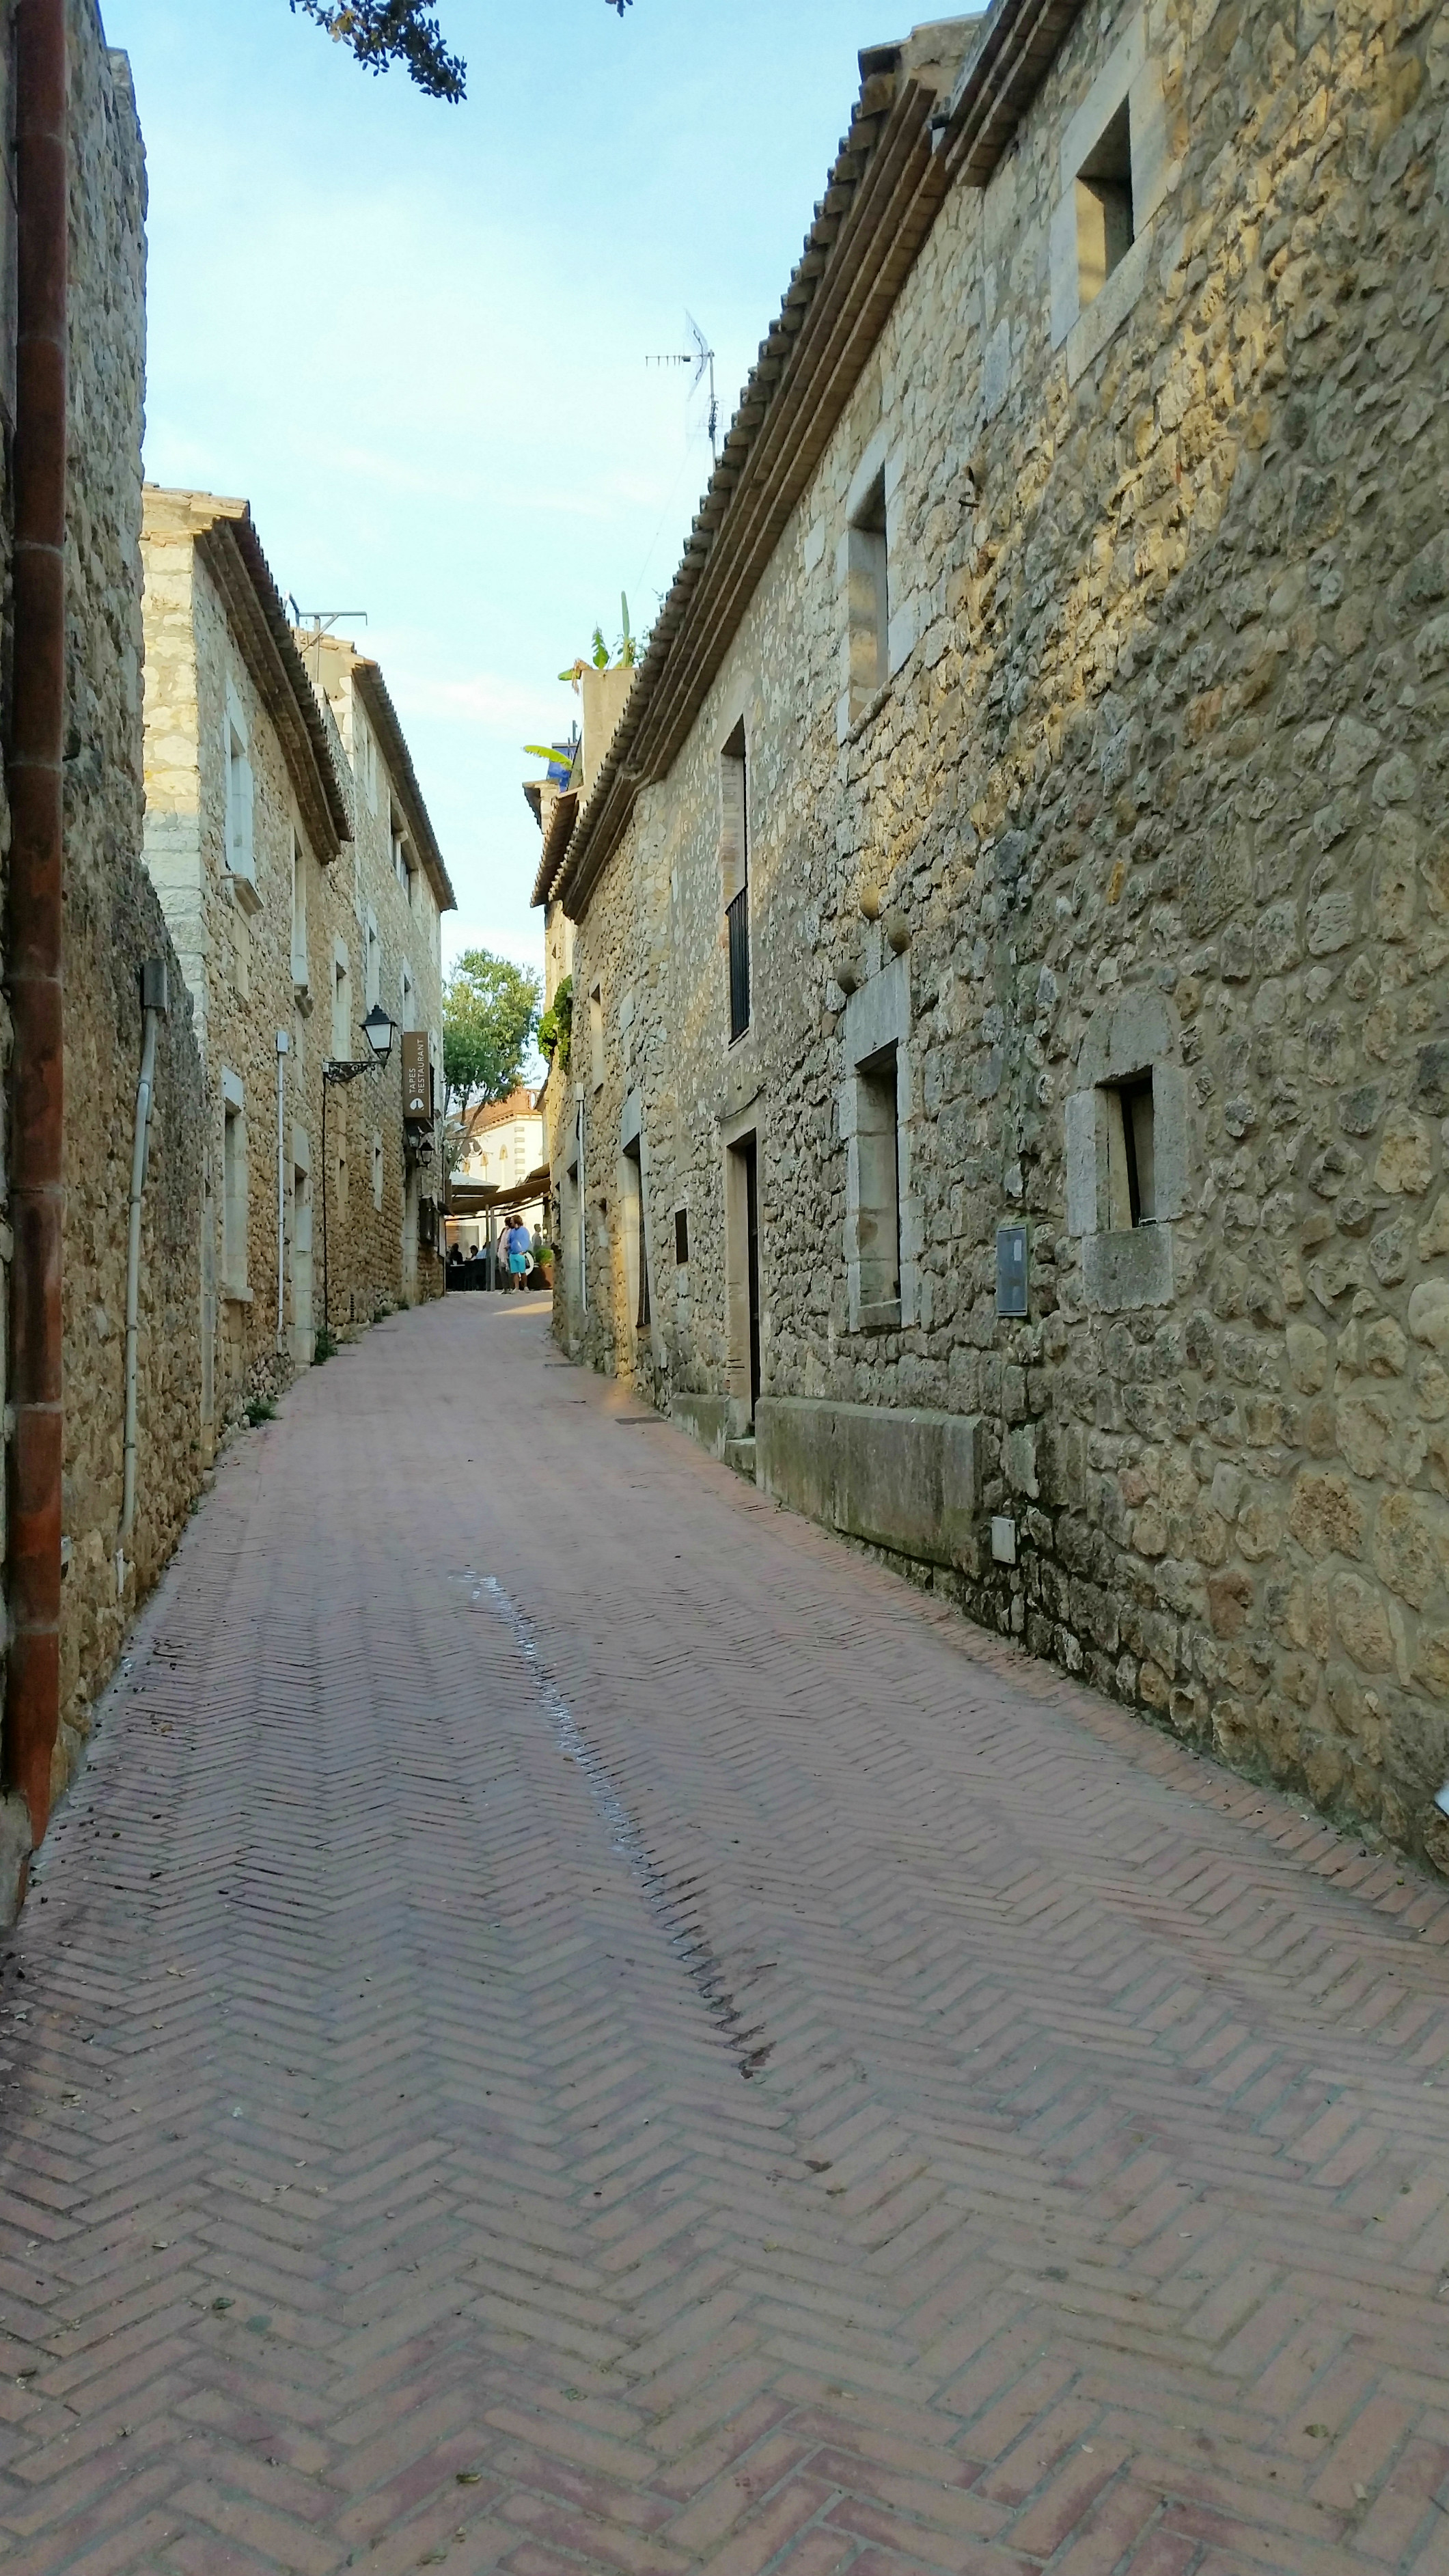 Streets of Sant Marti d' Empuries